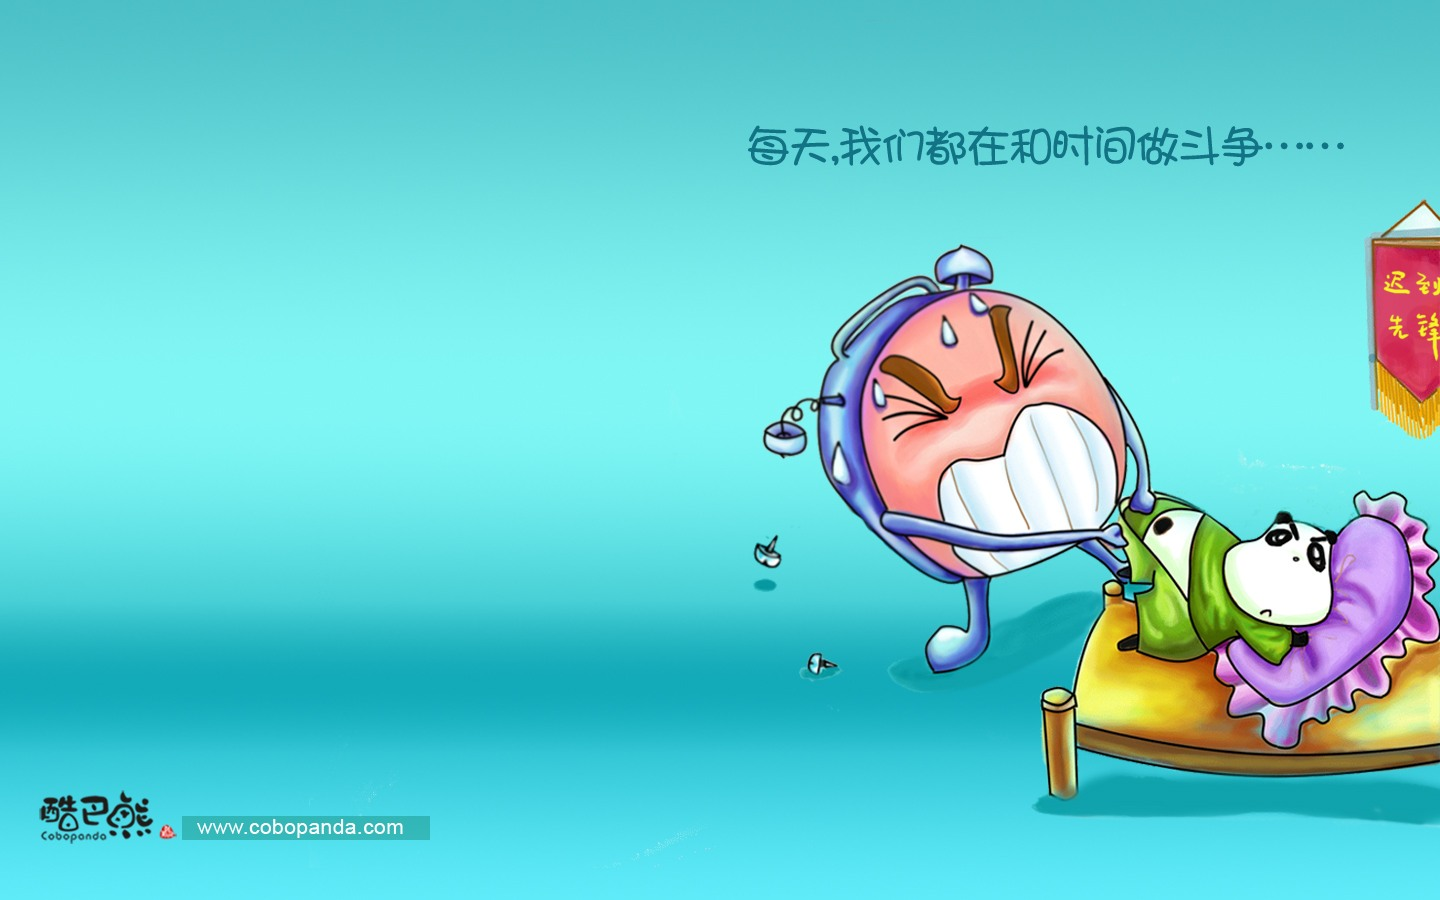 Funny Animated Wallpapers For Mobile Free Download Desktop